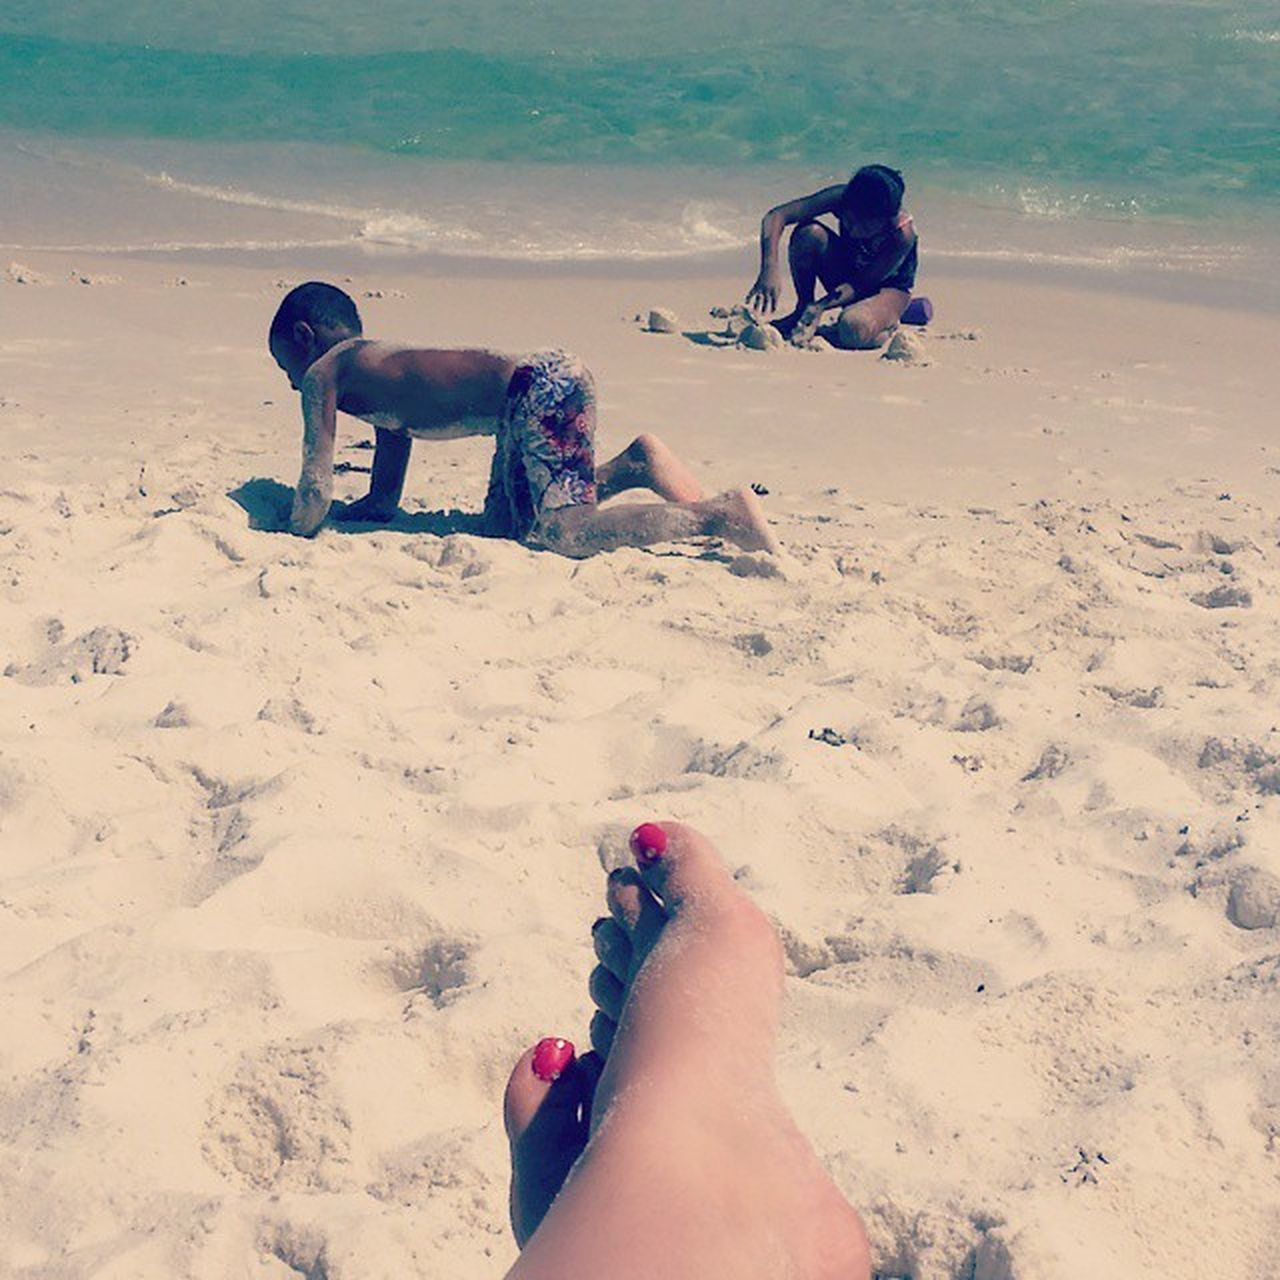 sand, real people, beach, human leg, barefoot, outdoors, togetherness, human body part, day, leisure activity, men, lifestyles, low section, women, friendship, vacations, nature, water, sky, adult, people